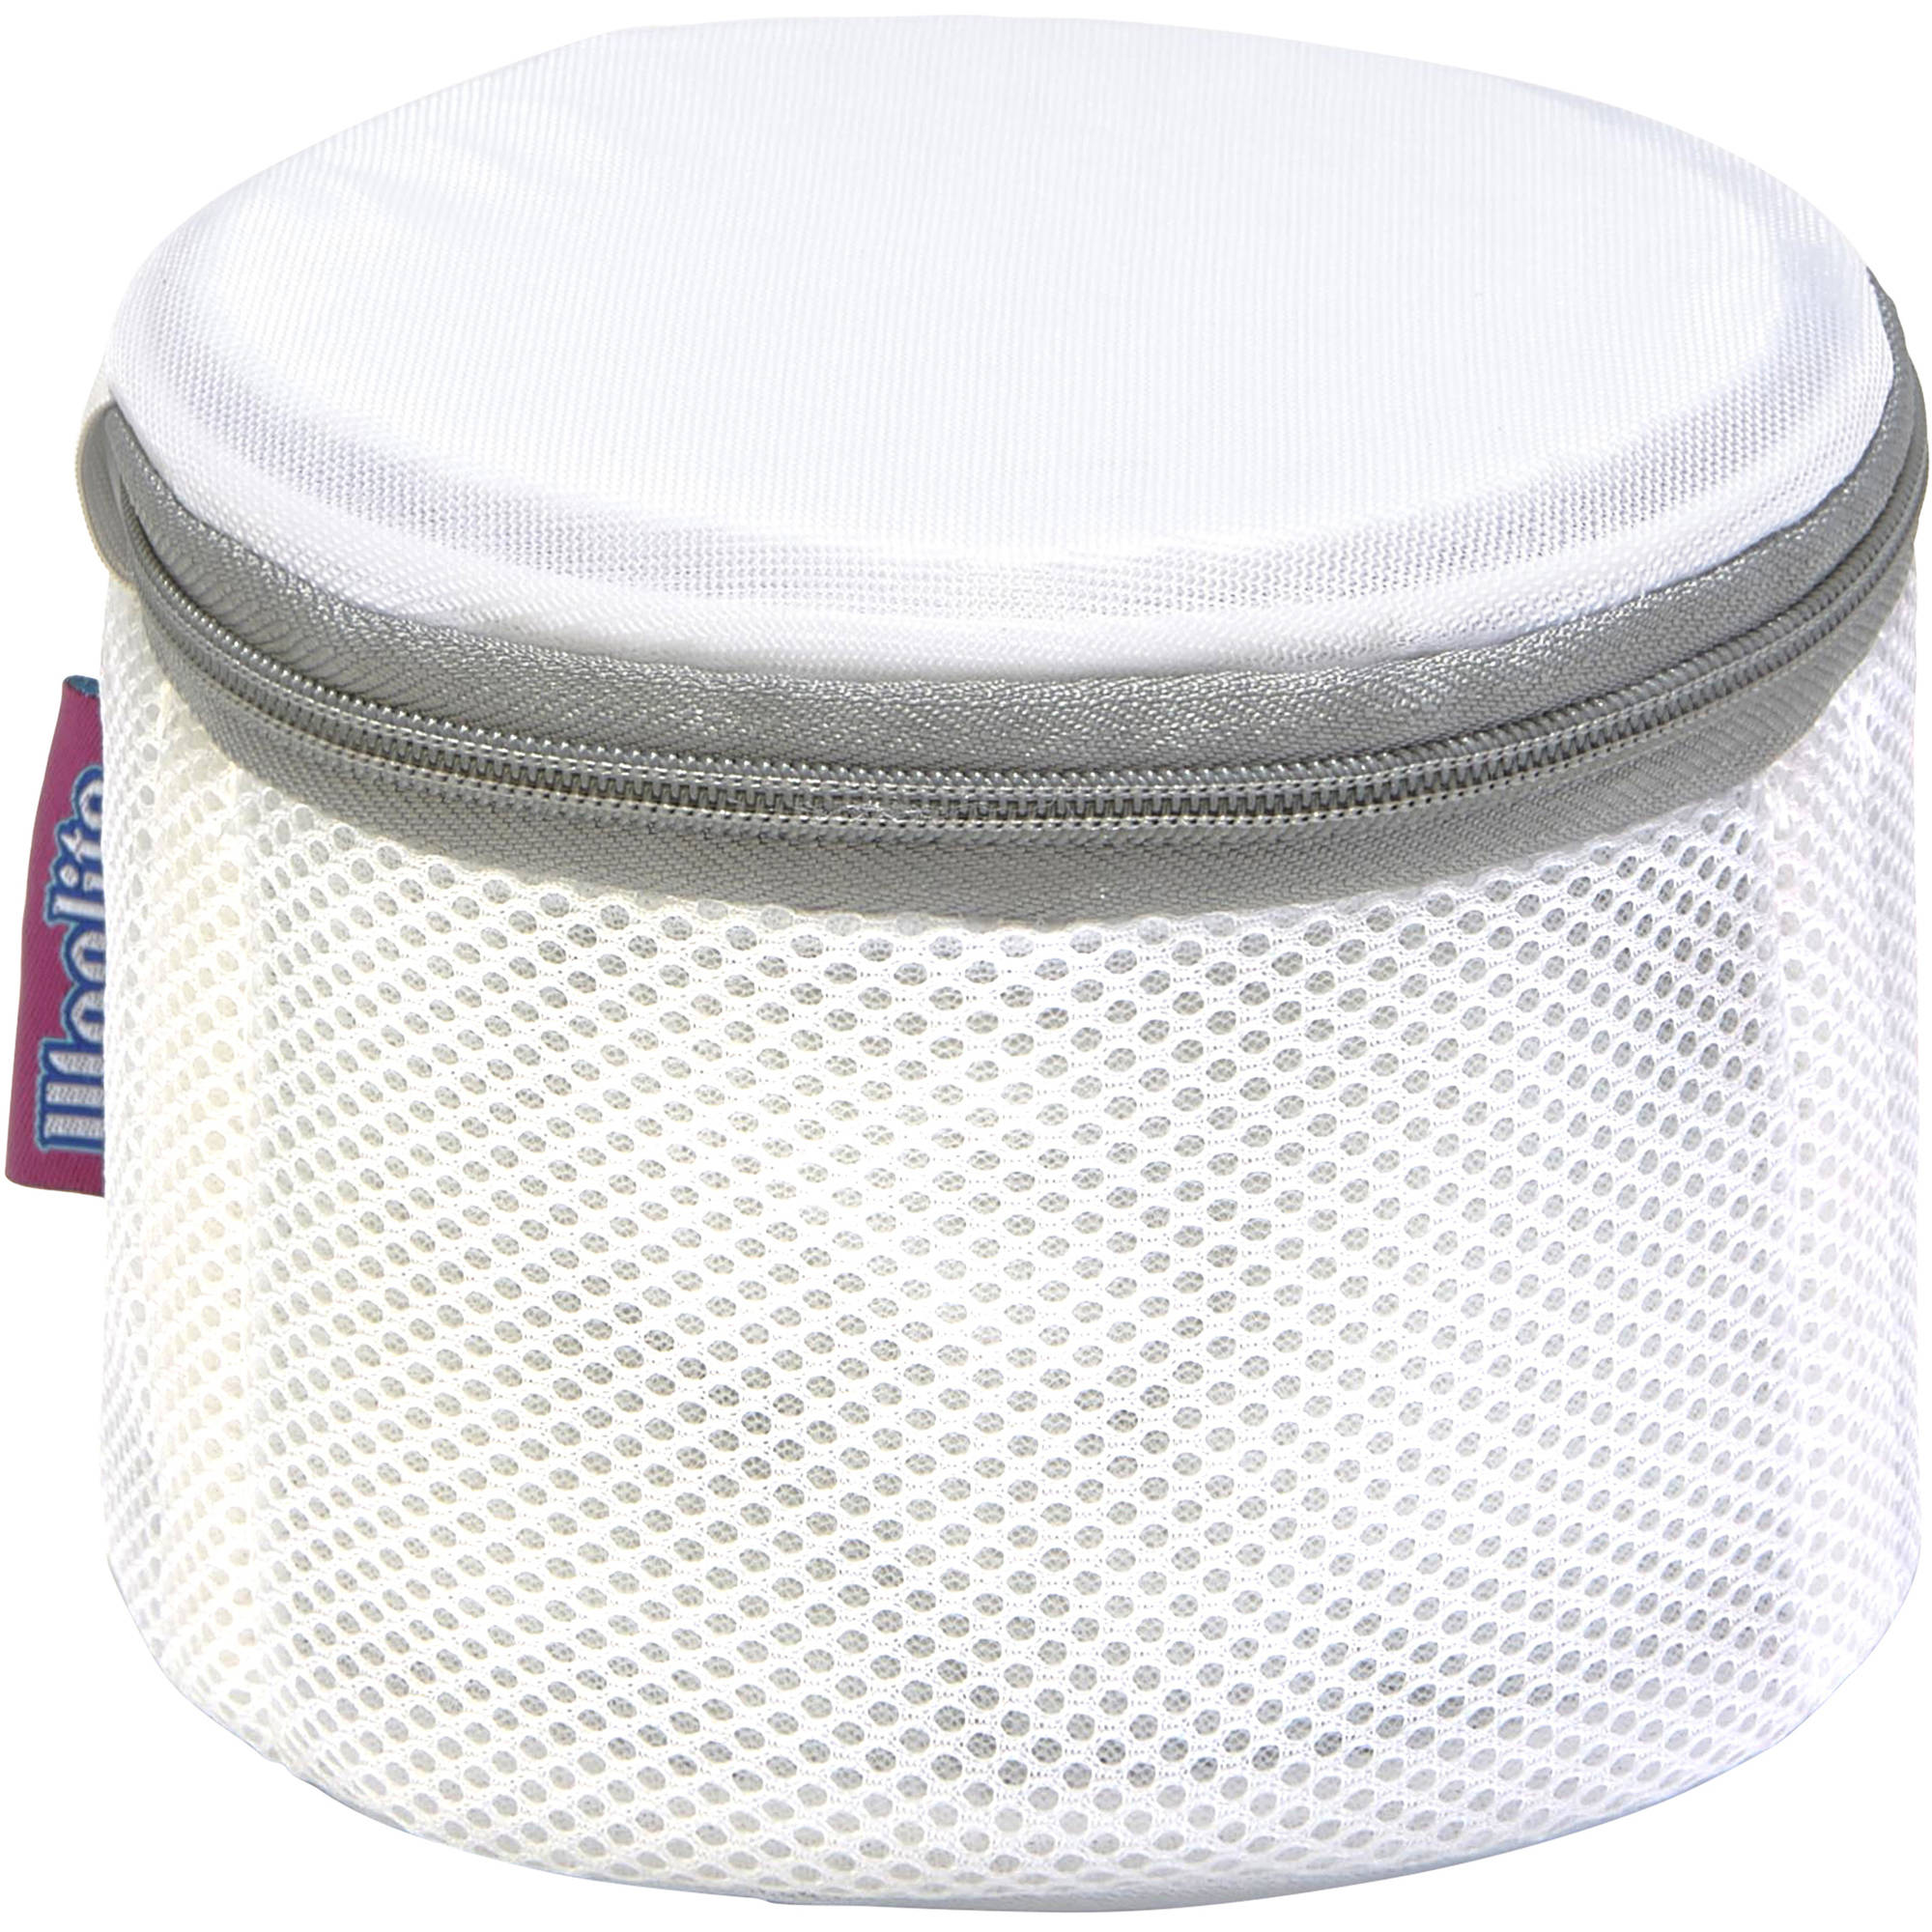 "Woolite Sanitized Mesh Wash Bra Bag, 6.25"" Round"